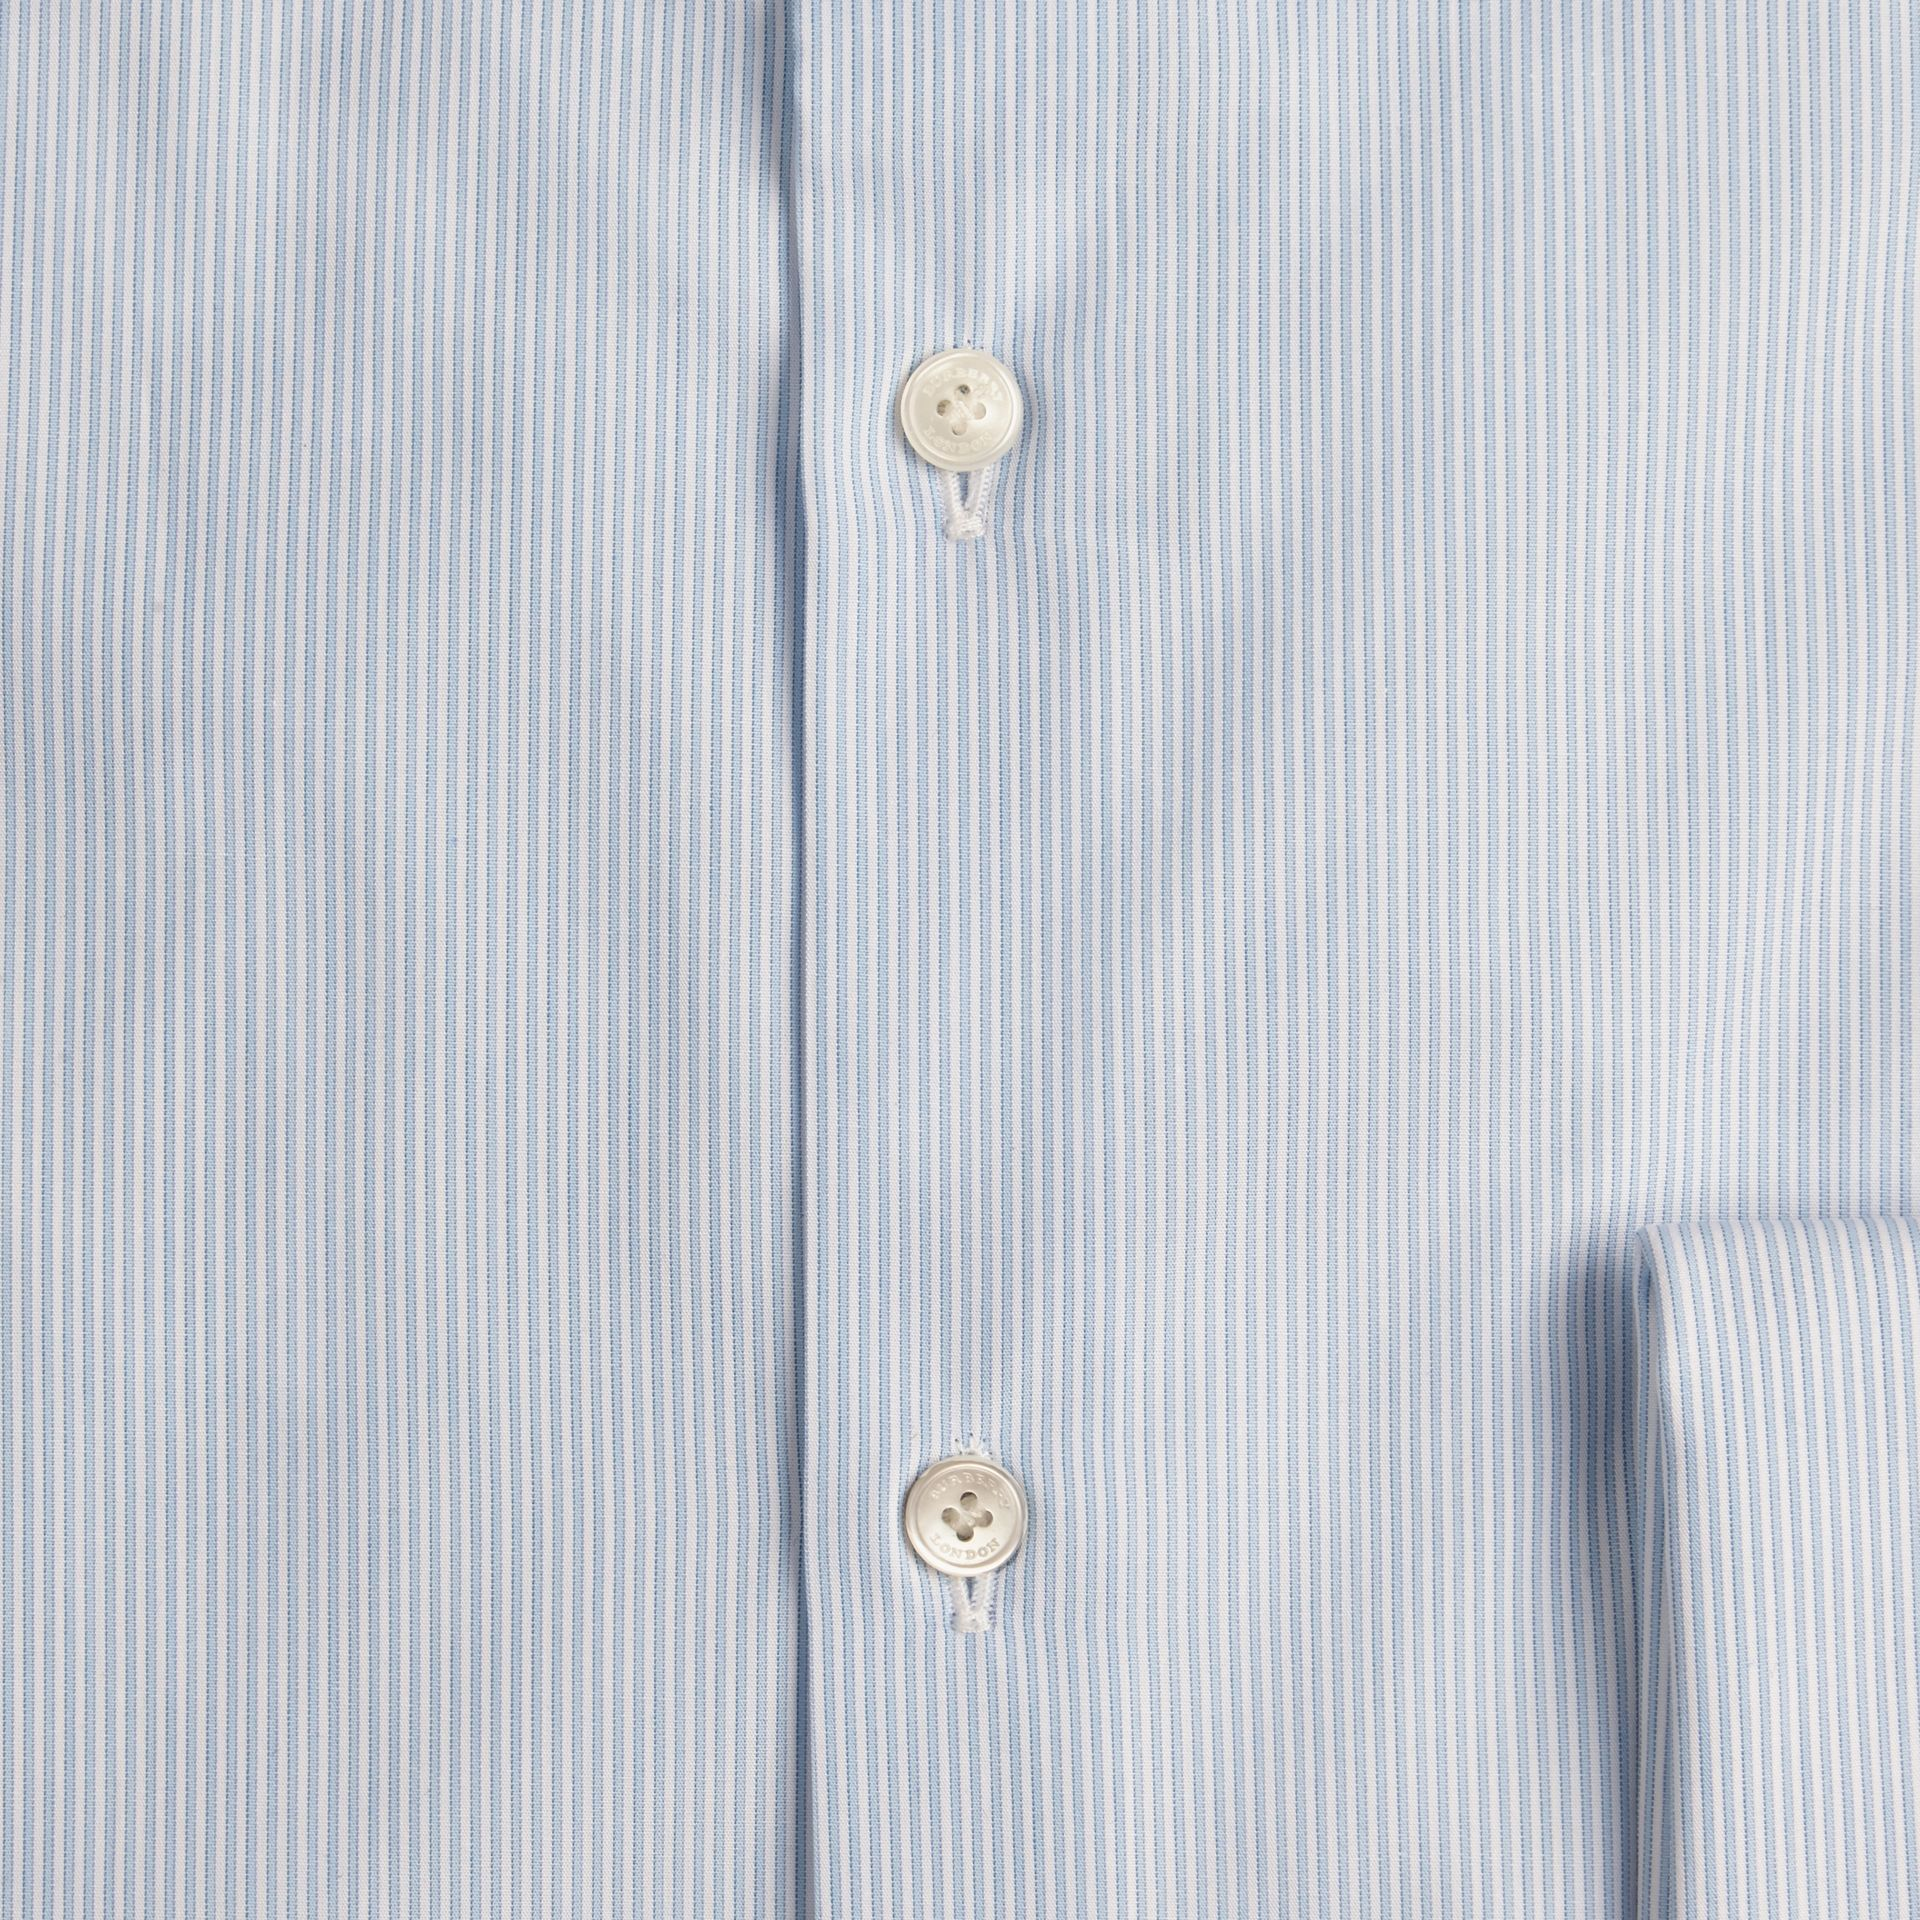 Slim Fit Double-cuff Striped Cotton Poplin Shirt in City Blue - Men | Burberry - gallery image 2